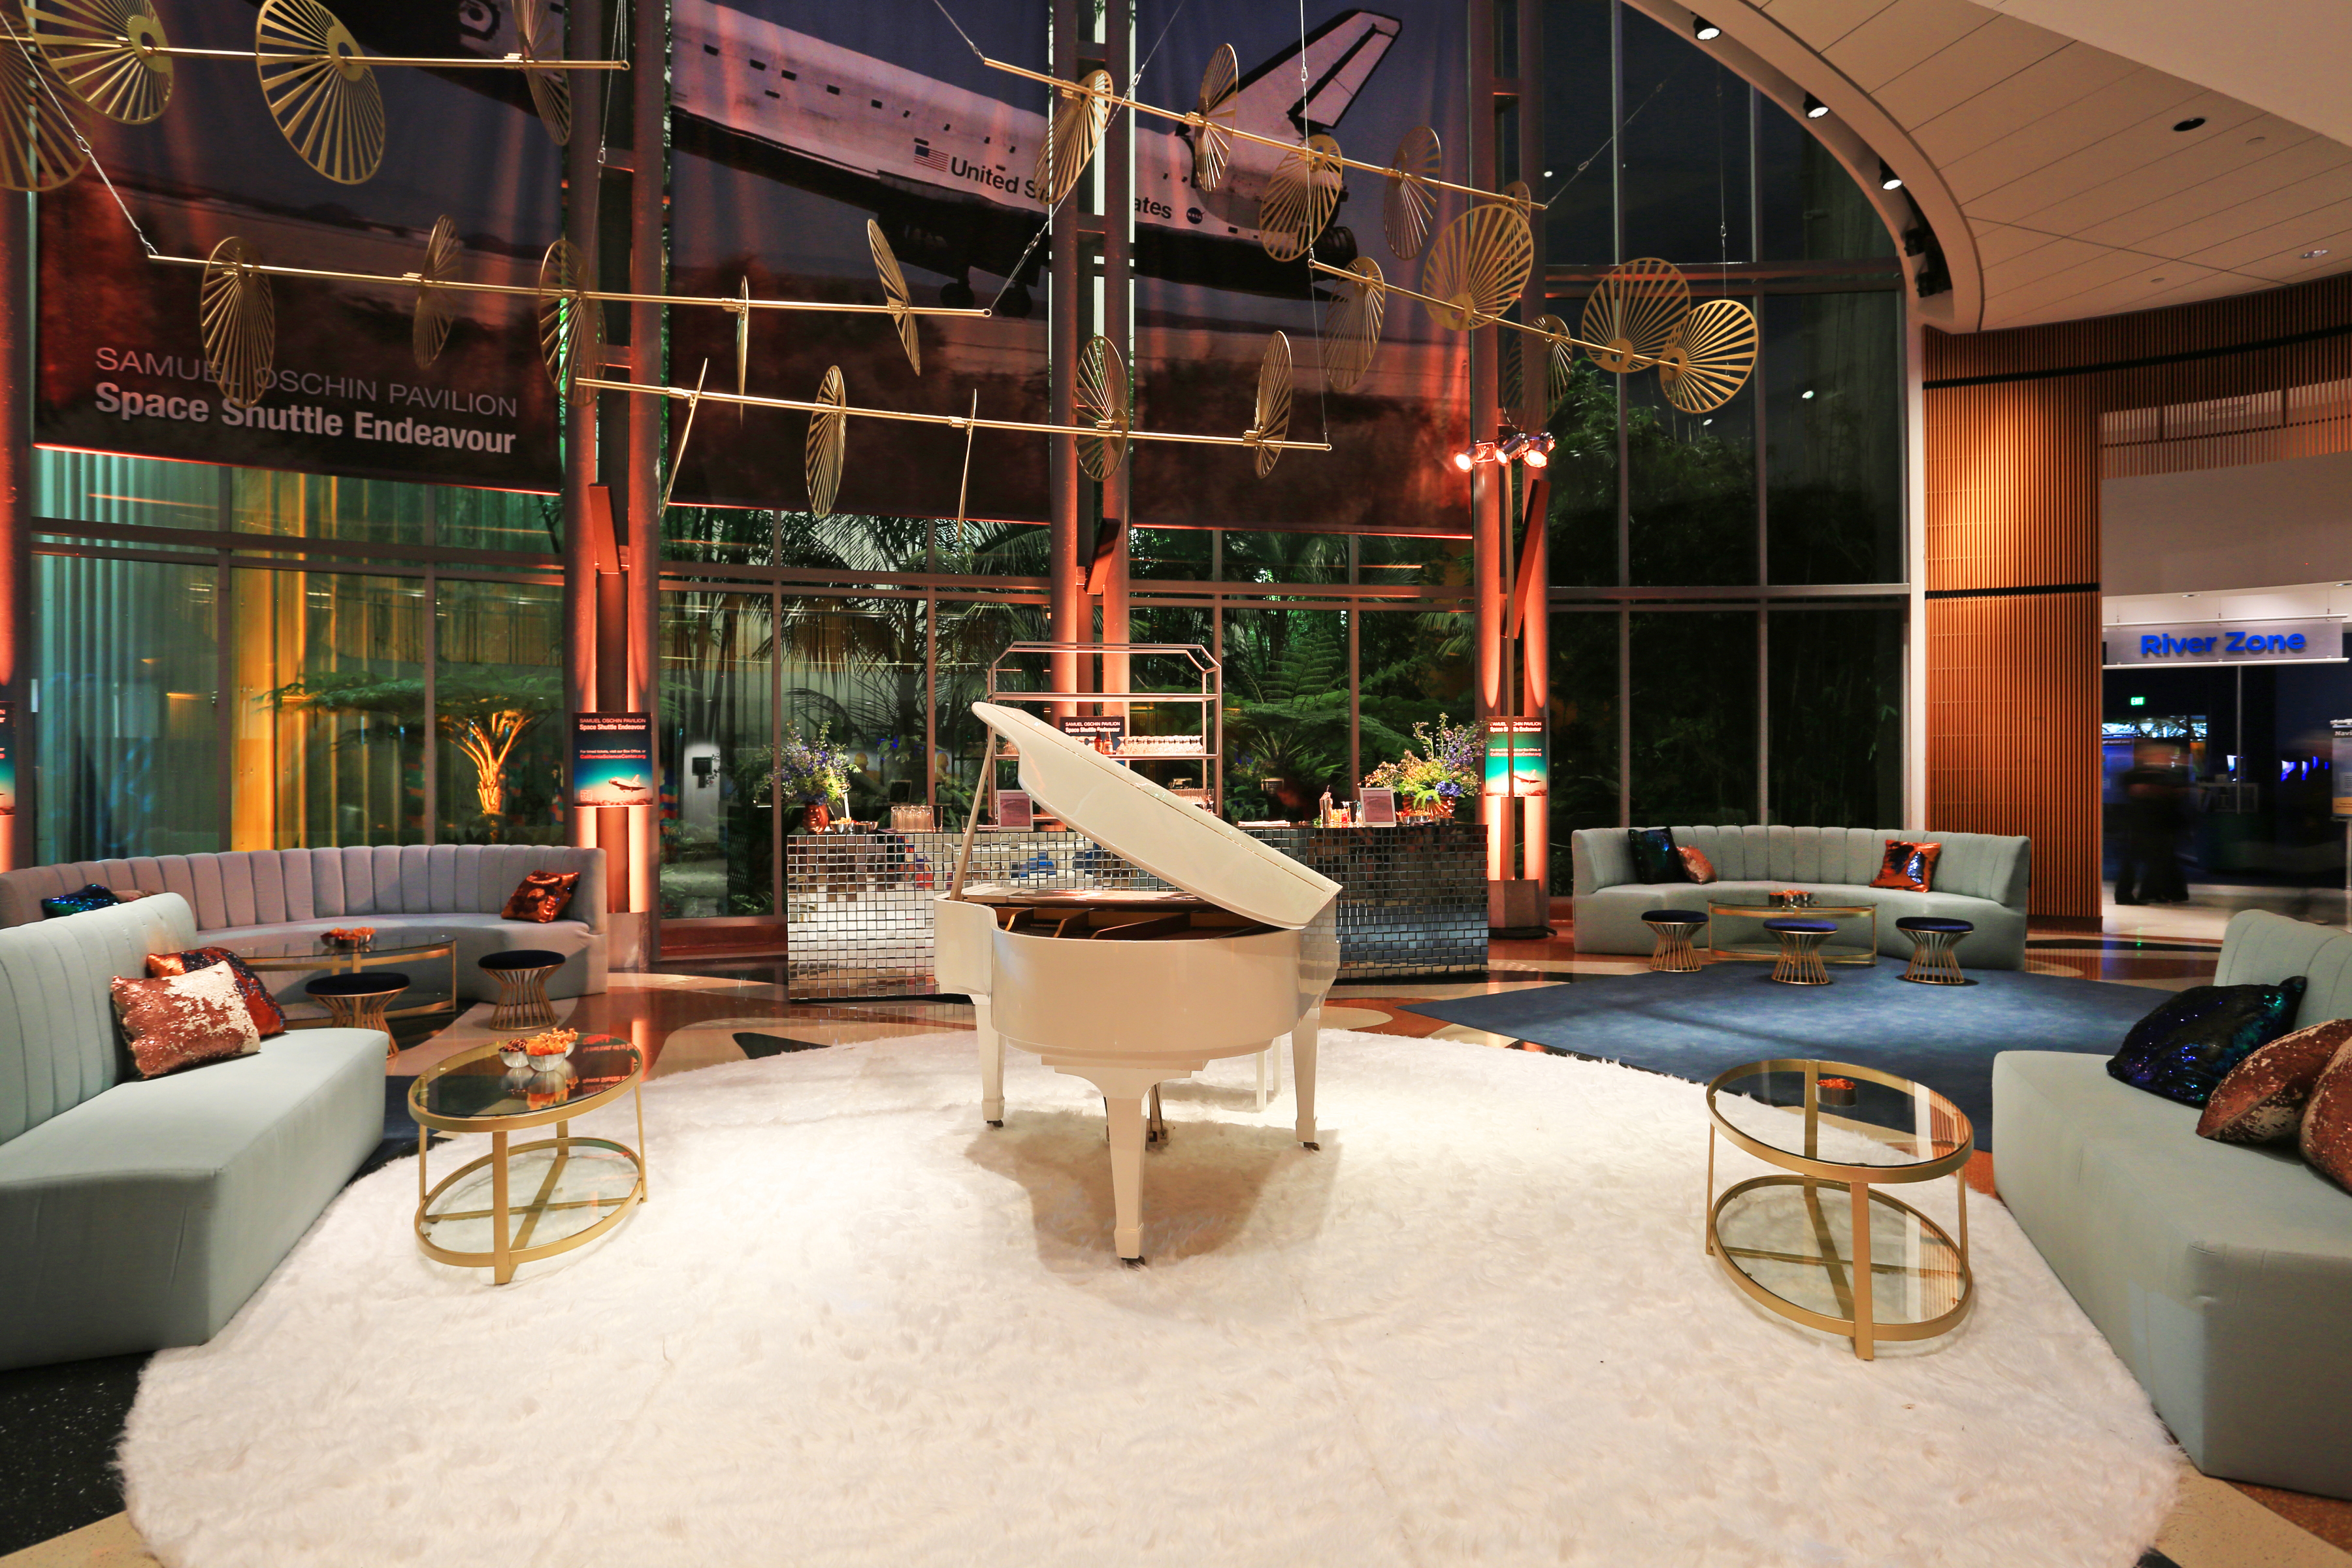 Ecosystems atrium with plush lounge furniture and white piano for private event